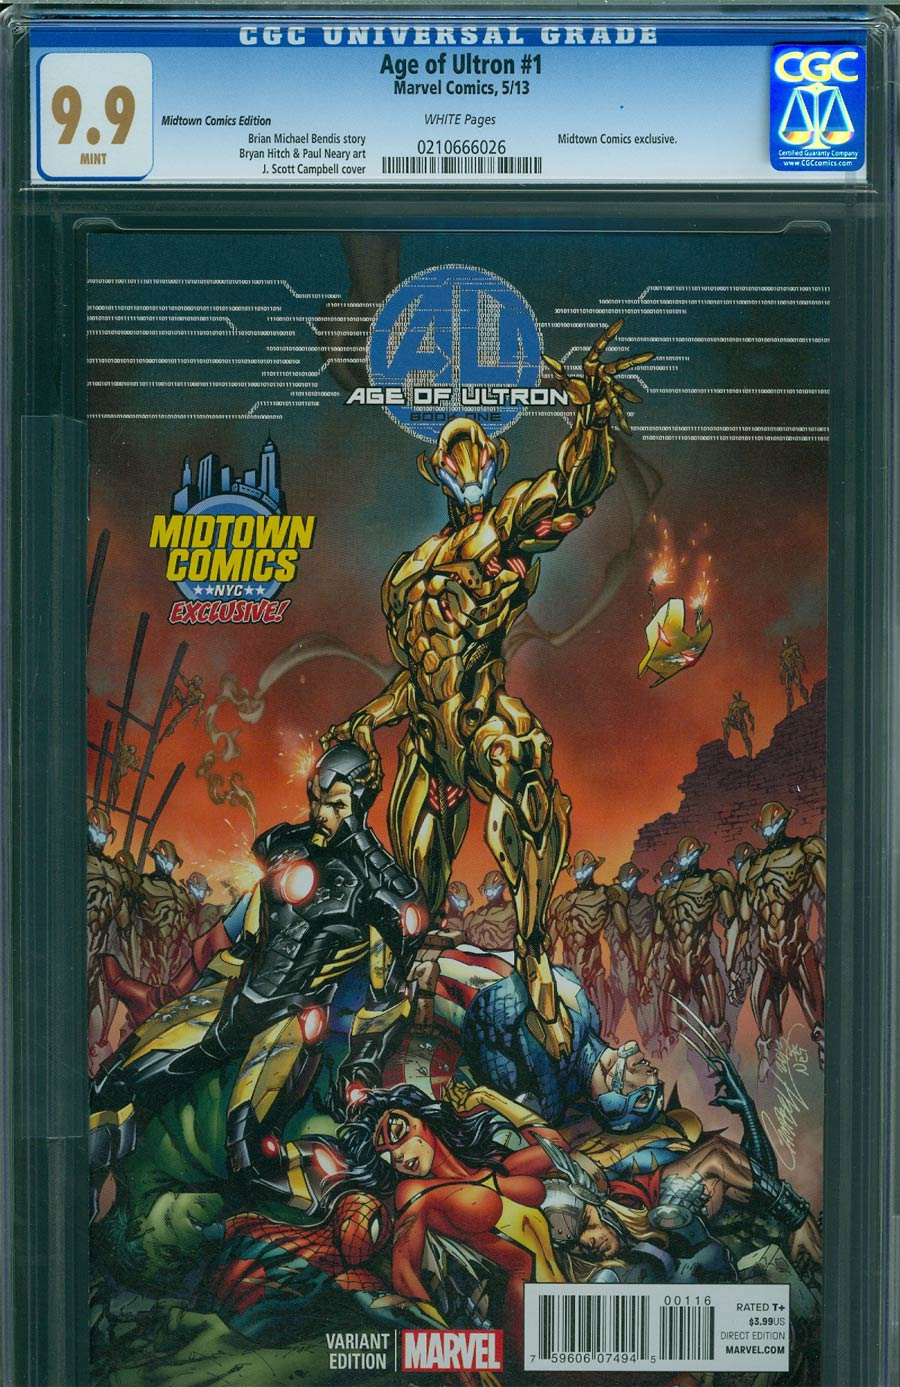 Age Of Ultron #1 Cover M Midtown Exclusive J Scott Campbell Color Variant Cover CGC 9.9